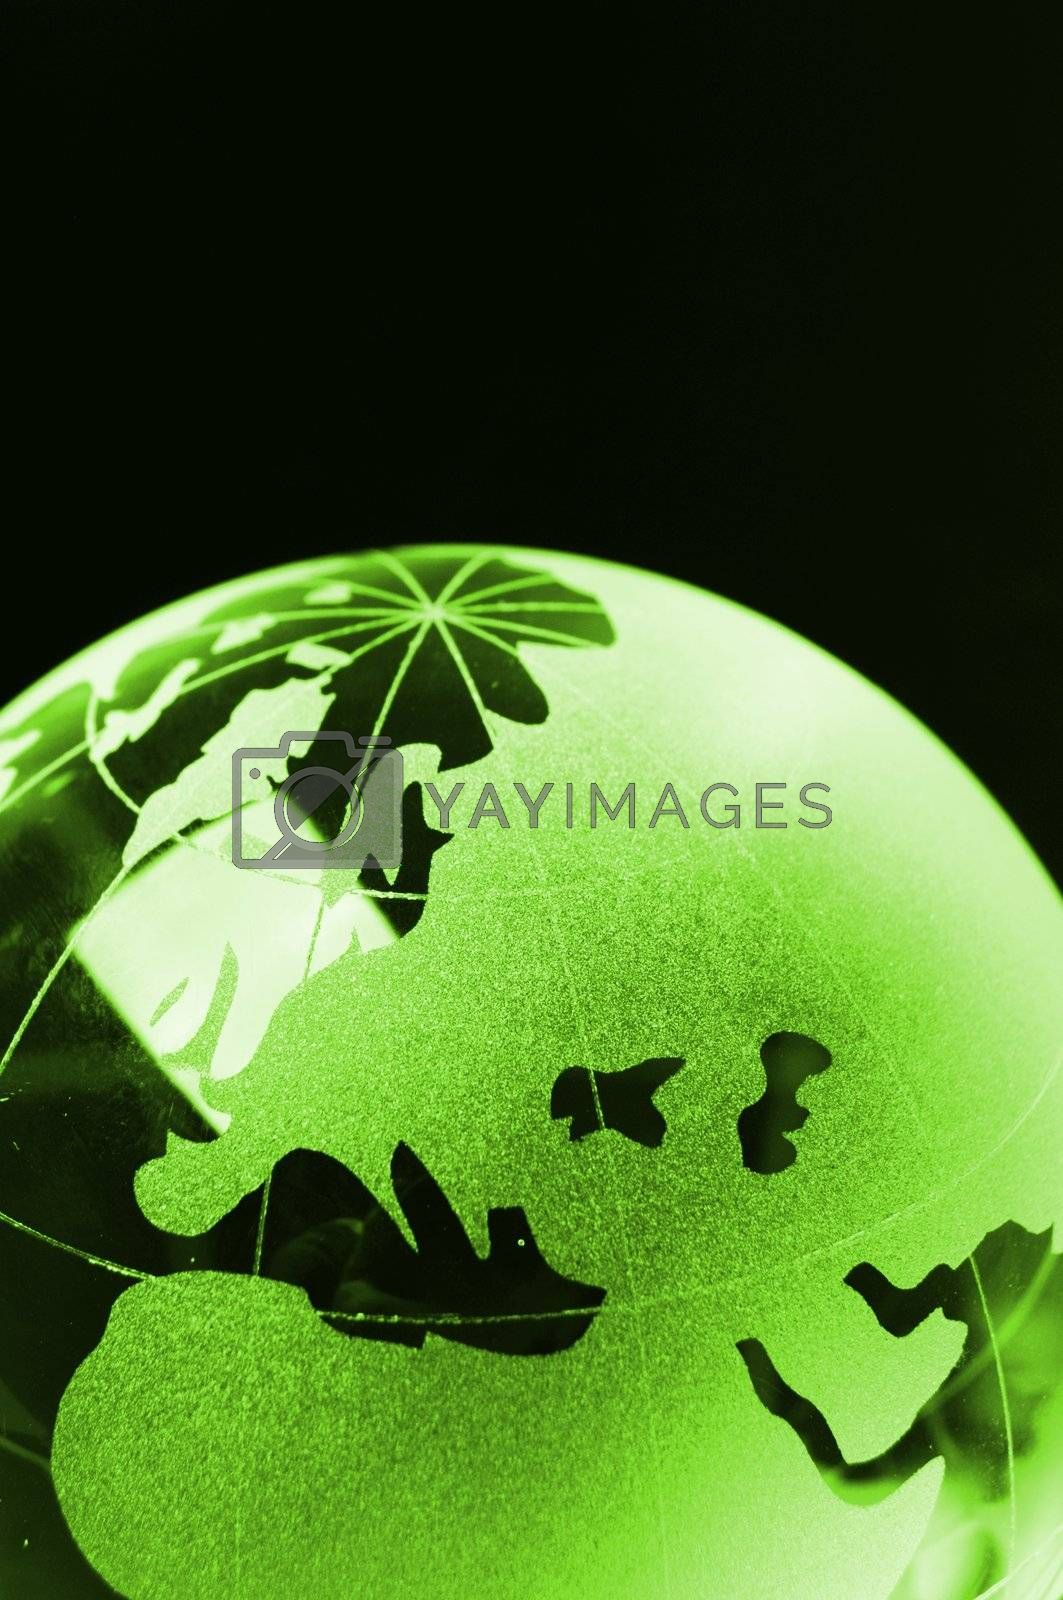 glass globe on black background showing business or environment concept with copyspace